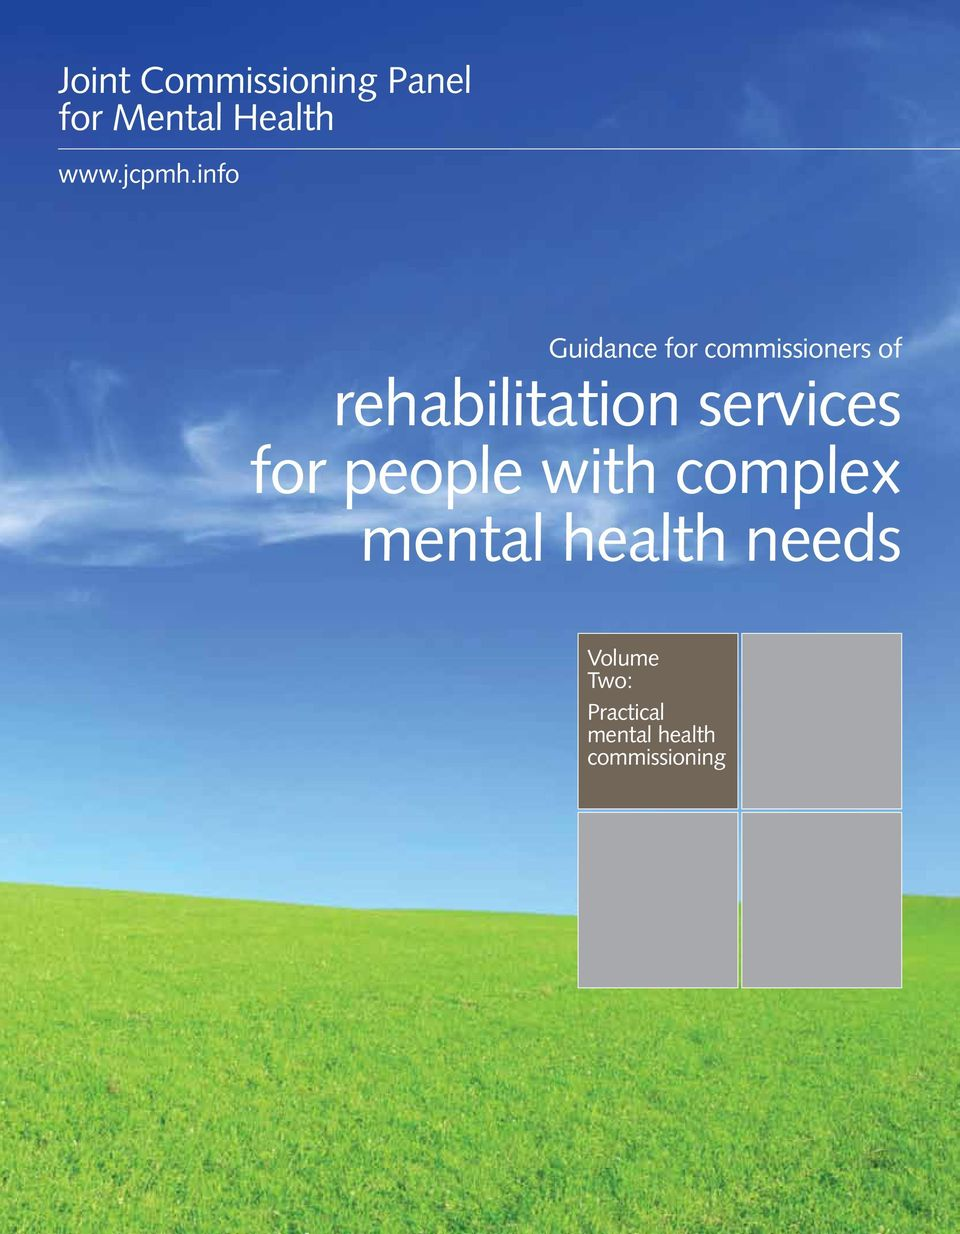 complex mental health needs 1 Guidance for commissioners of rehabilitation